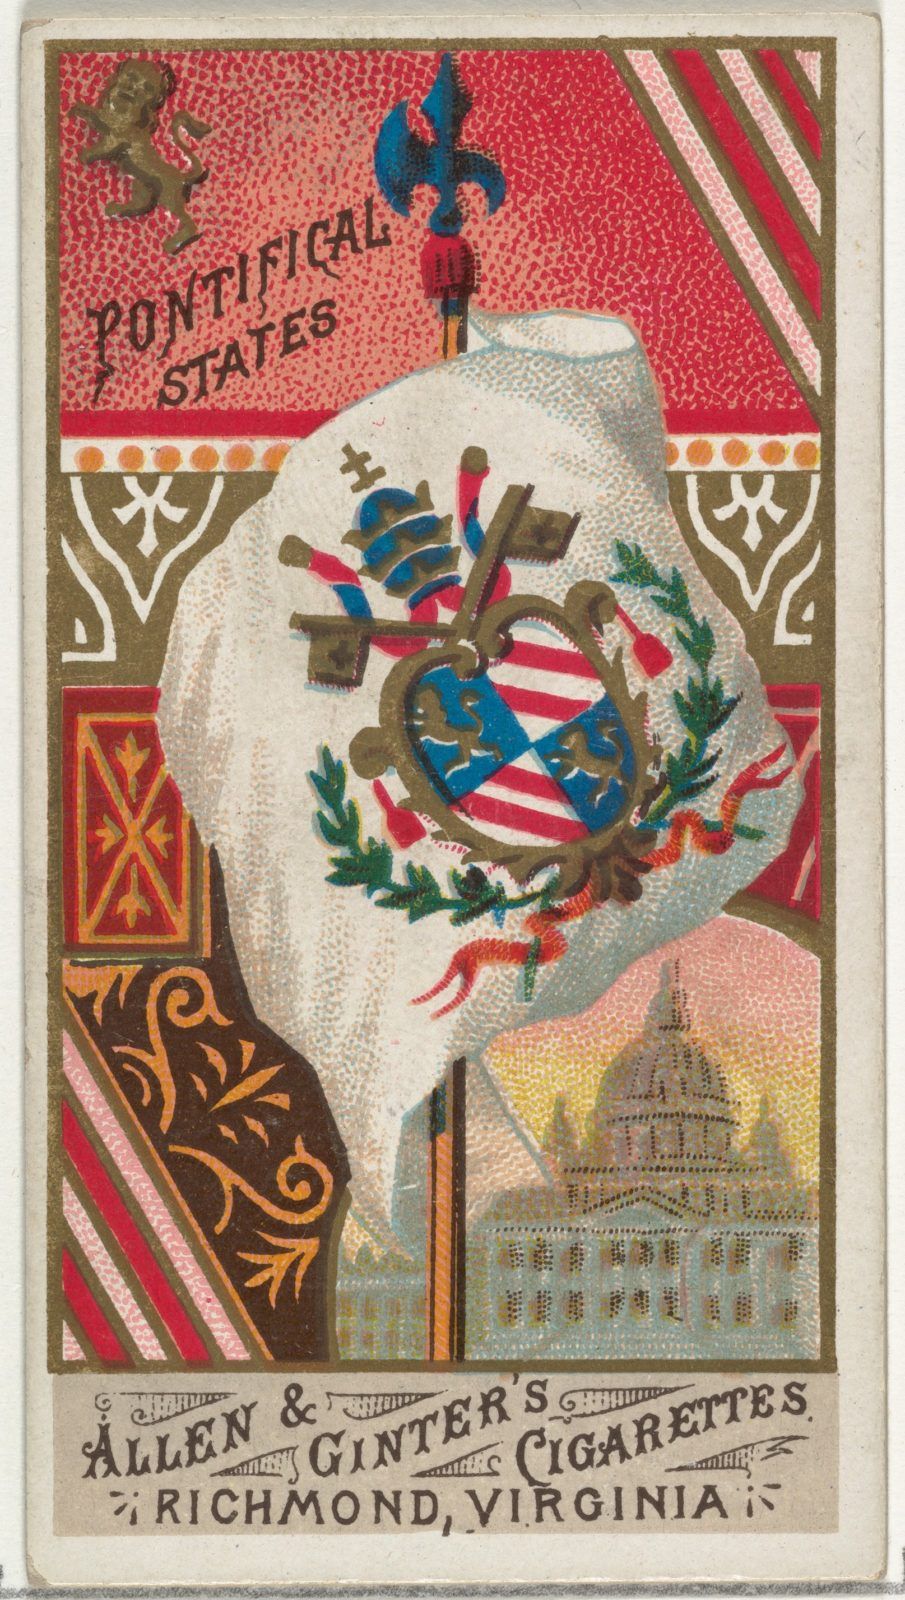 Pontifical States, from Flags of All Nations, Series 1 (N9) for Allen & Ginter Cigarettes Brands